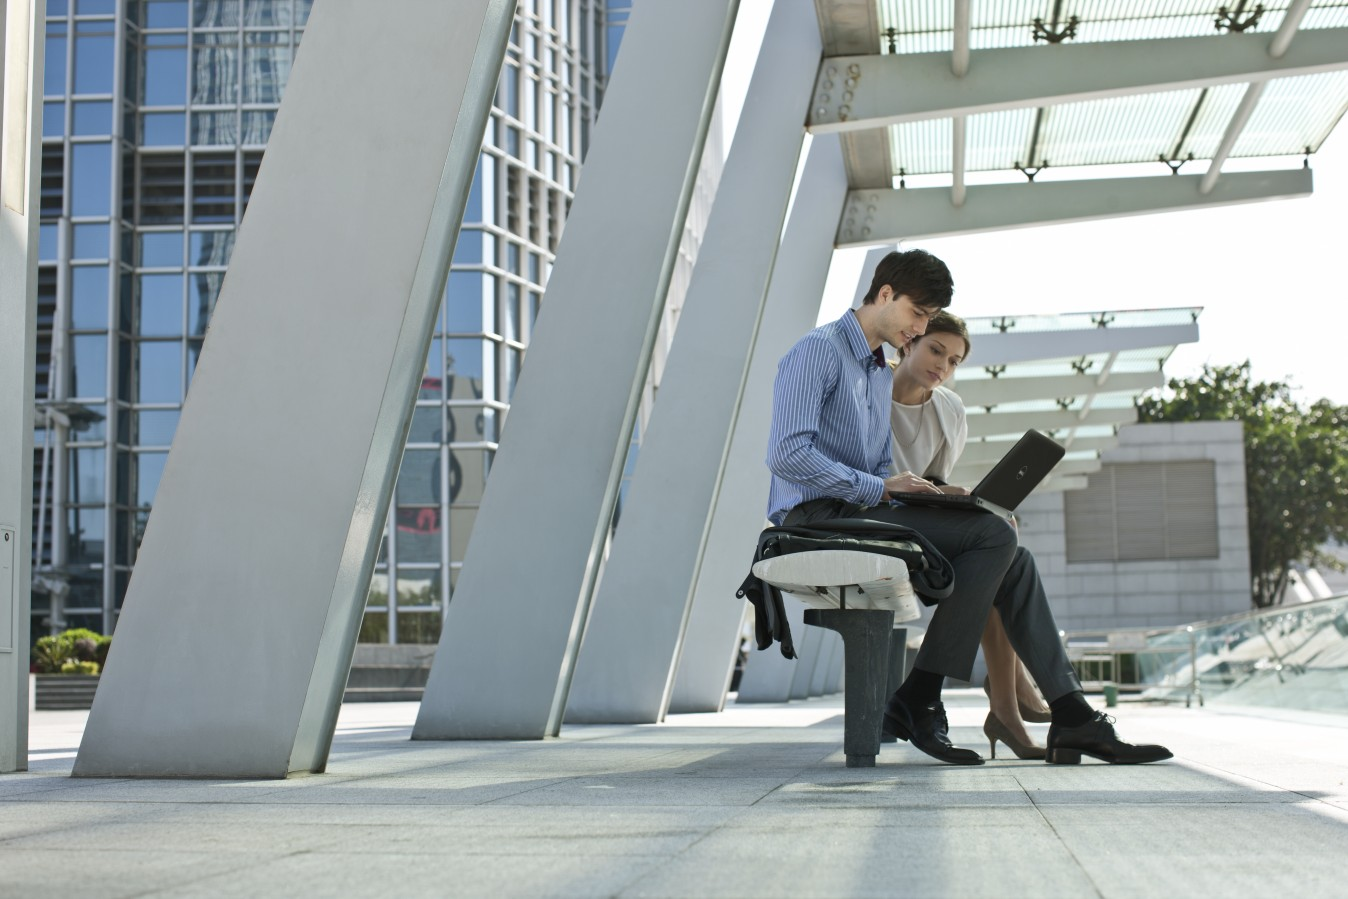 AffPro Man and Woman Sitting on Bench Using Inspiron 15R